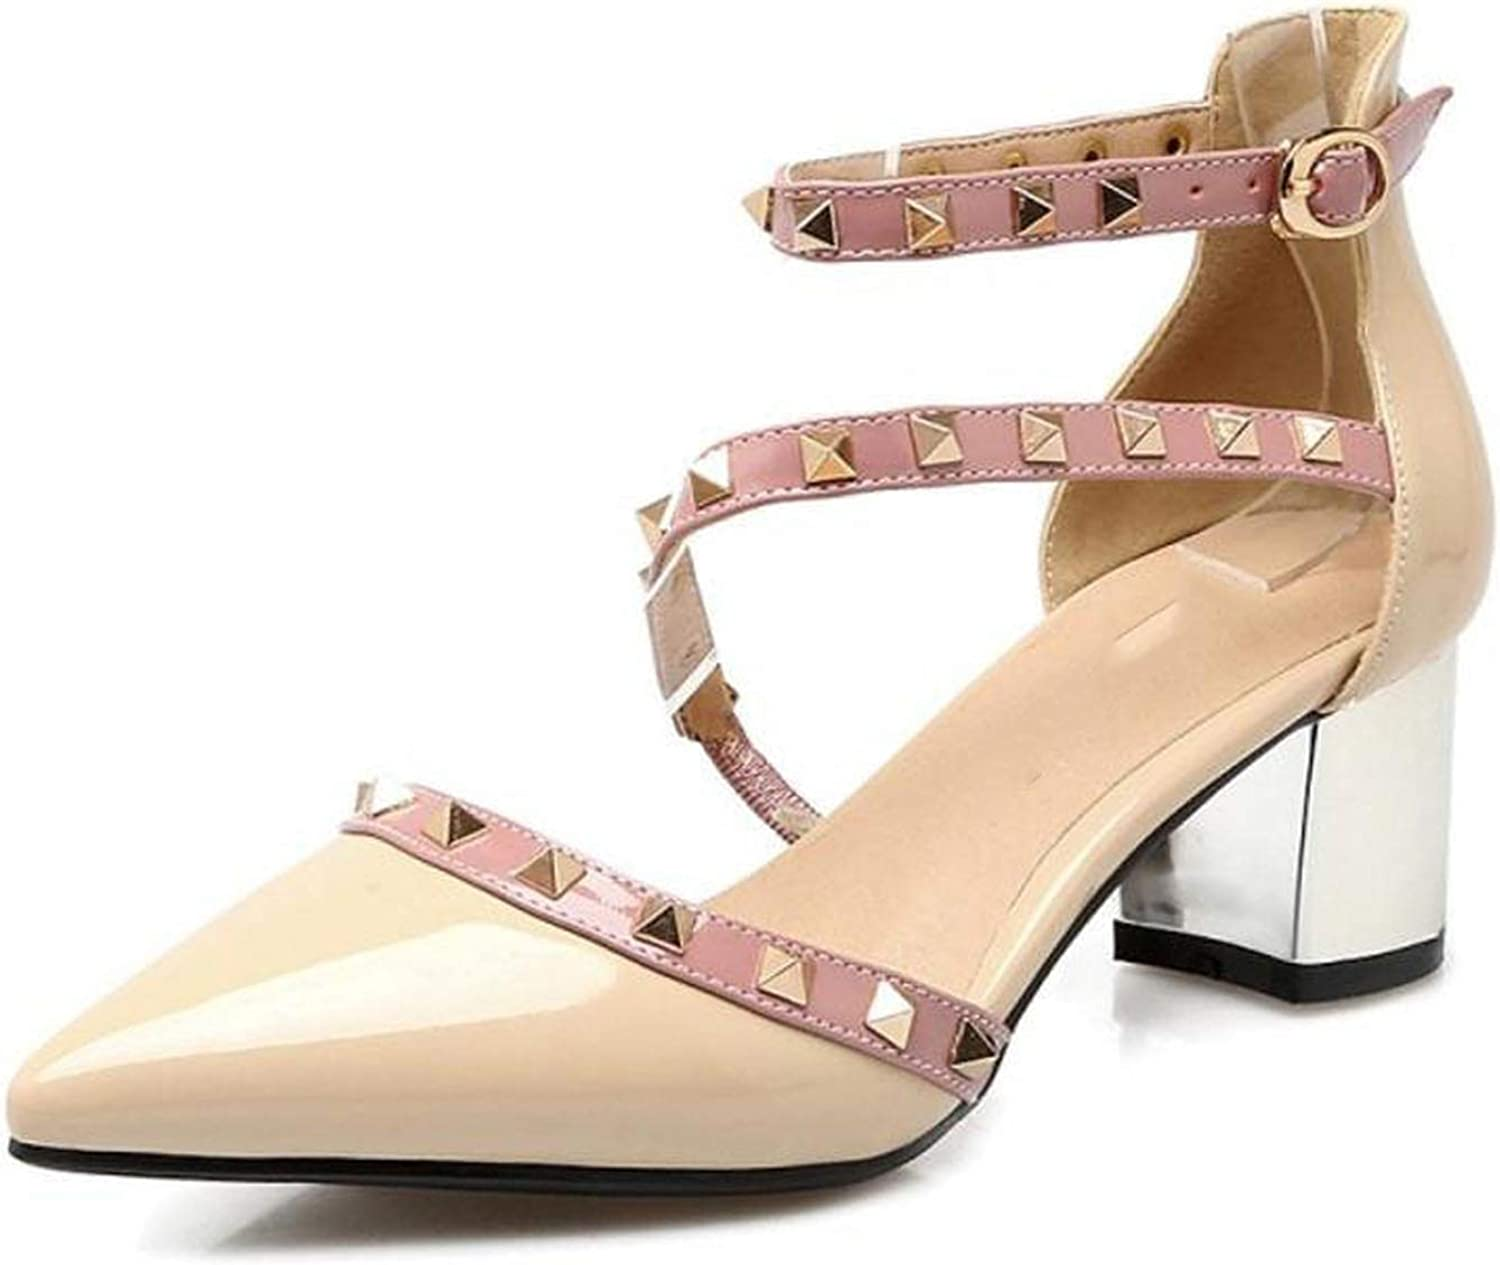 Rivets Buckle Sandals Pointed Toe Heels shoes Women Ankle Strap Party Wedding Footwear